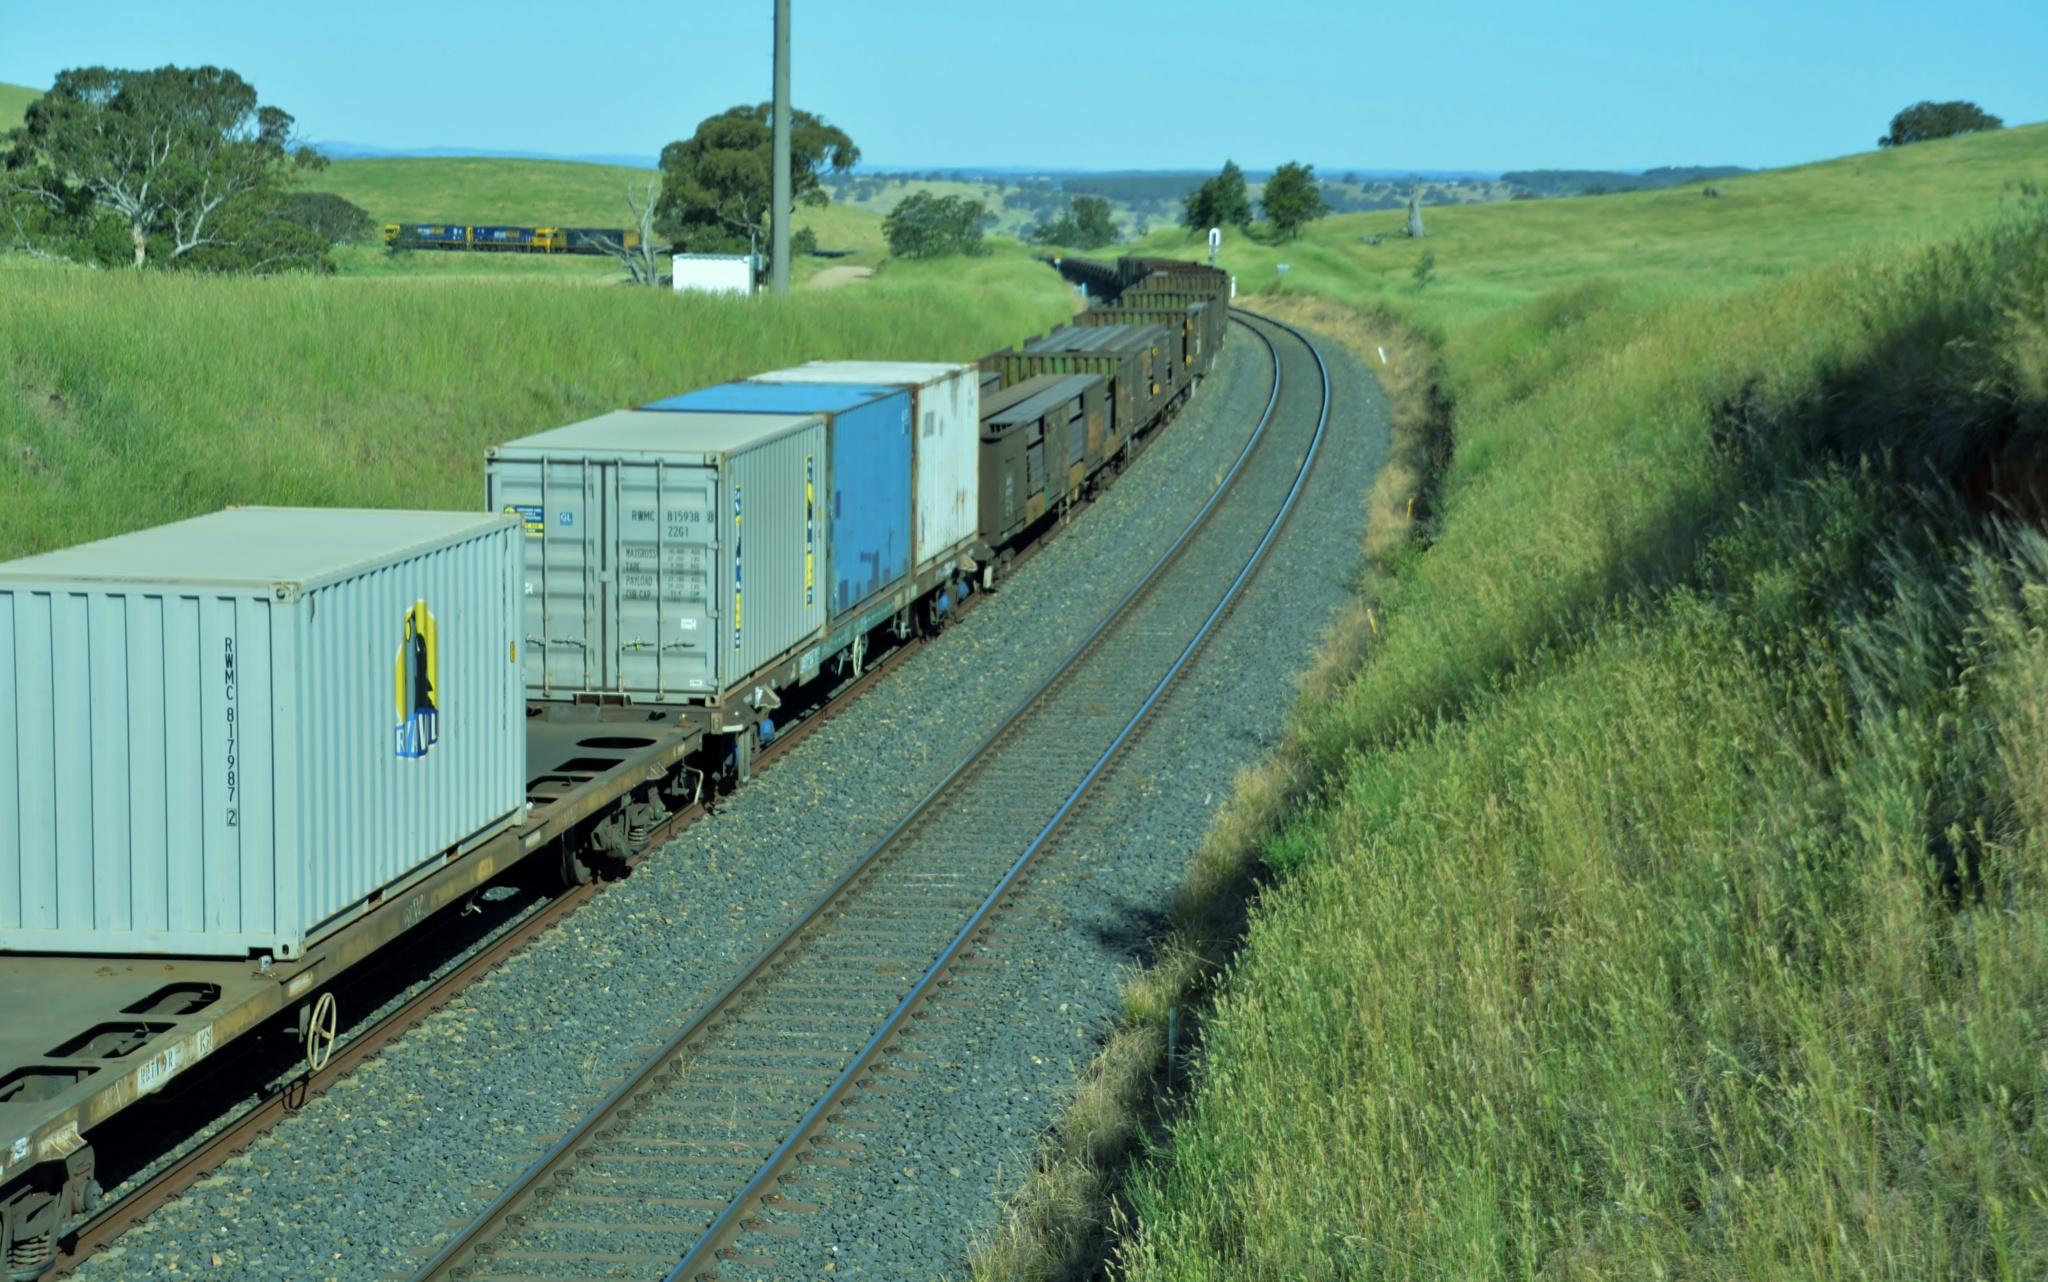 One of the many long freight trains that run through our rural region by valli.hemp